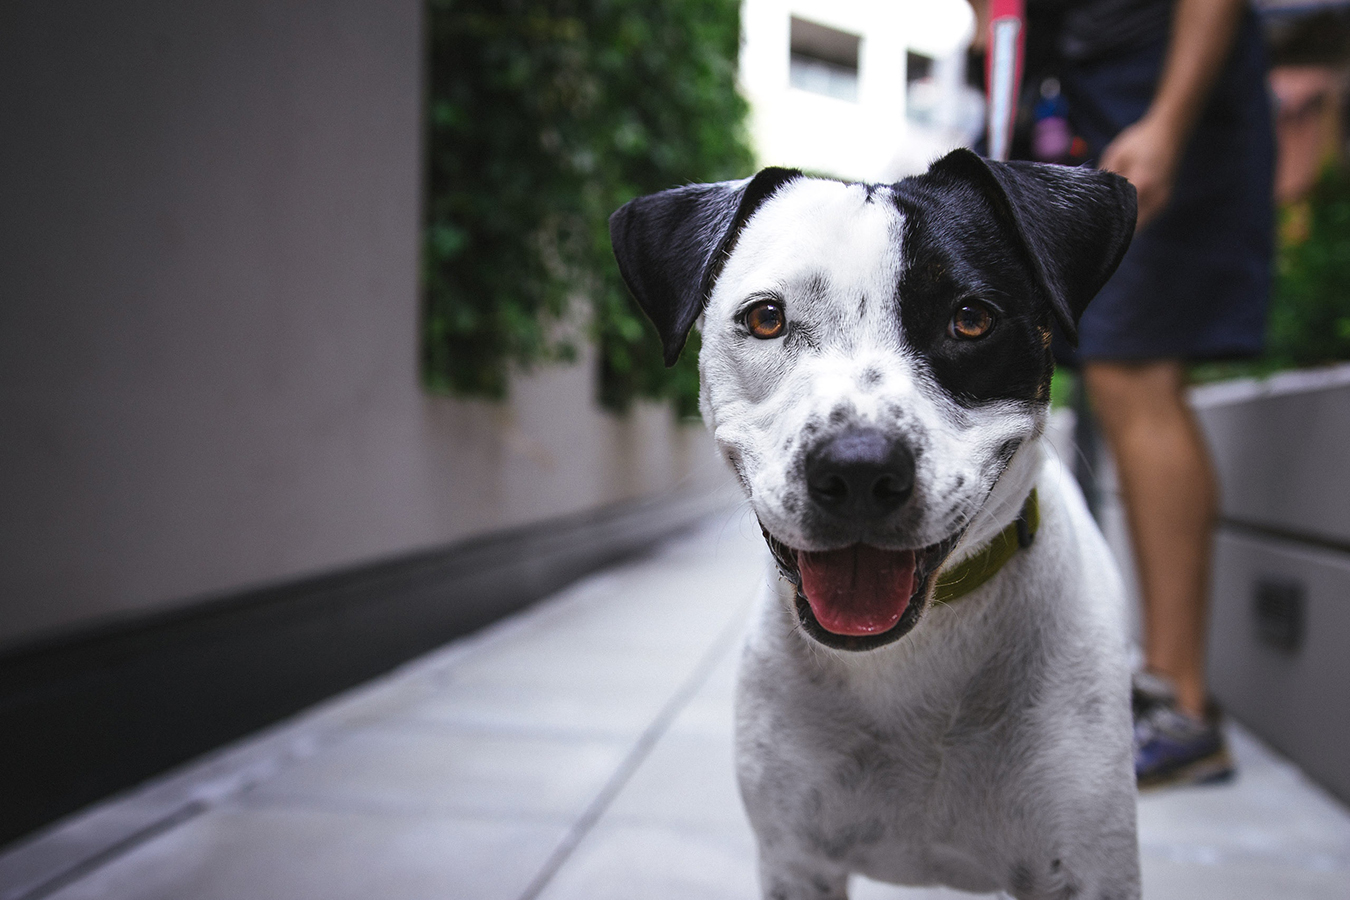 Smiling dog with a black eye patch on the street with his owner